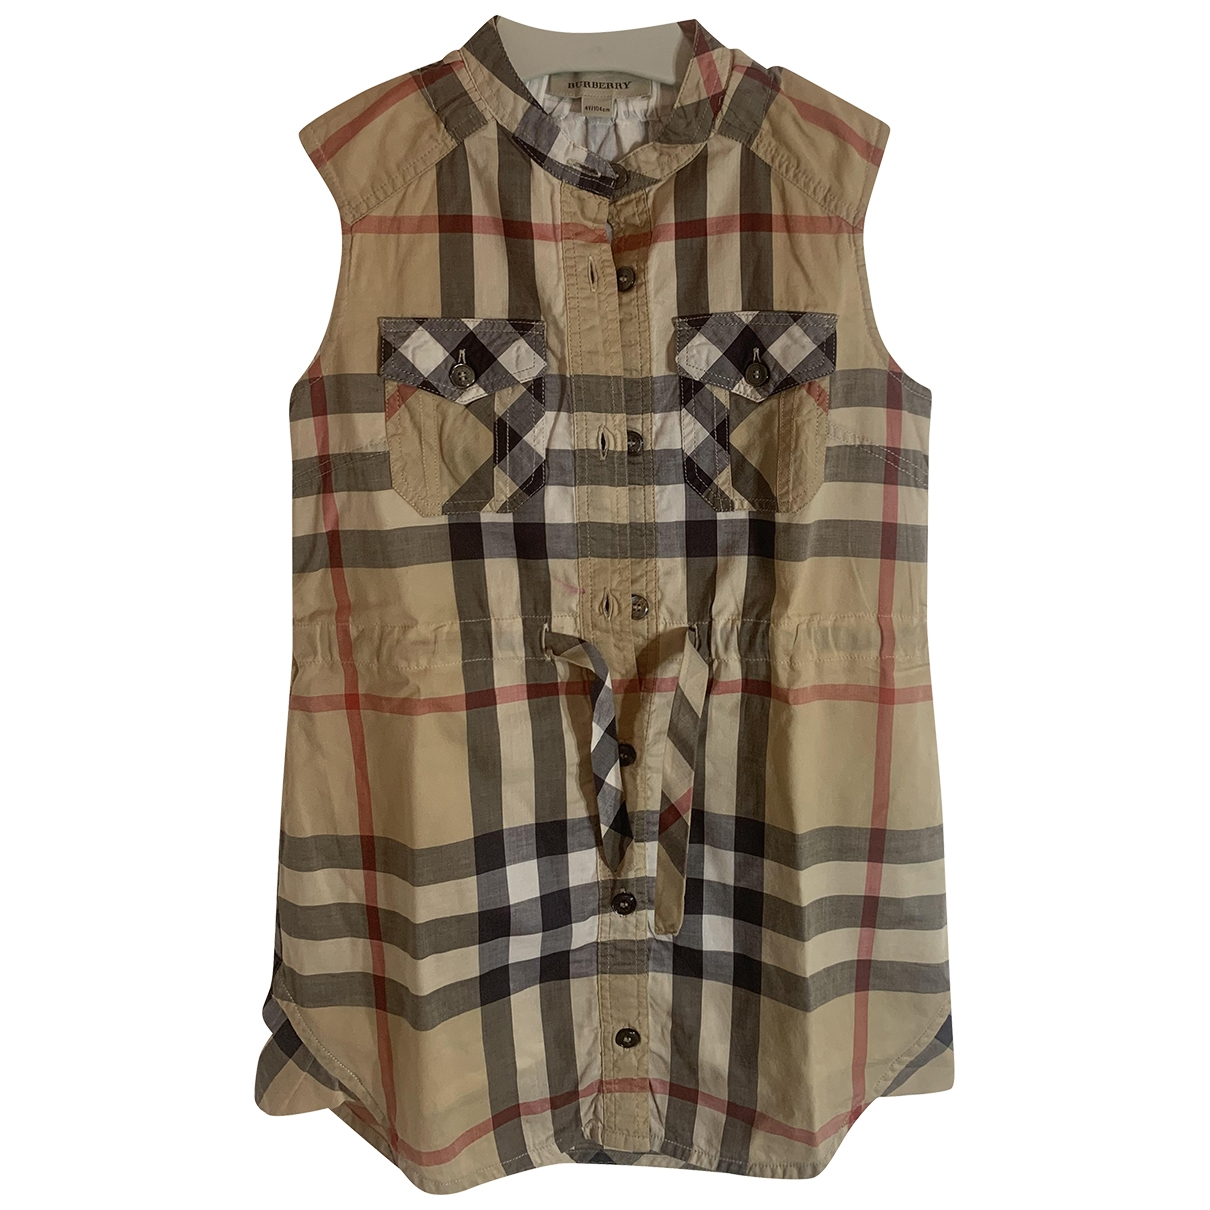 Burberry \N Beige Cotton dress for Kids 4 years - up to 102cm FR